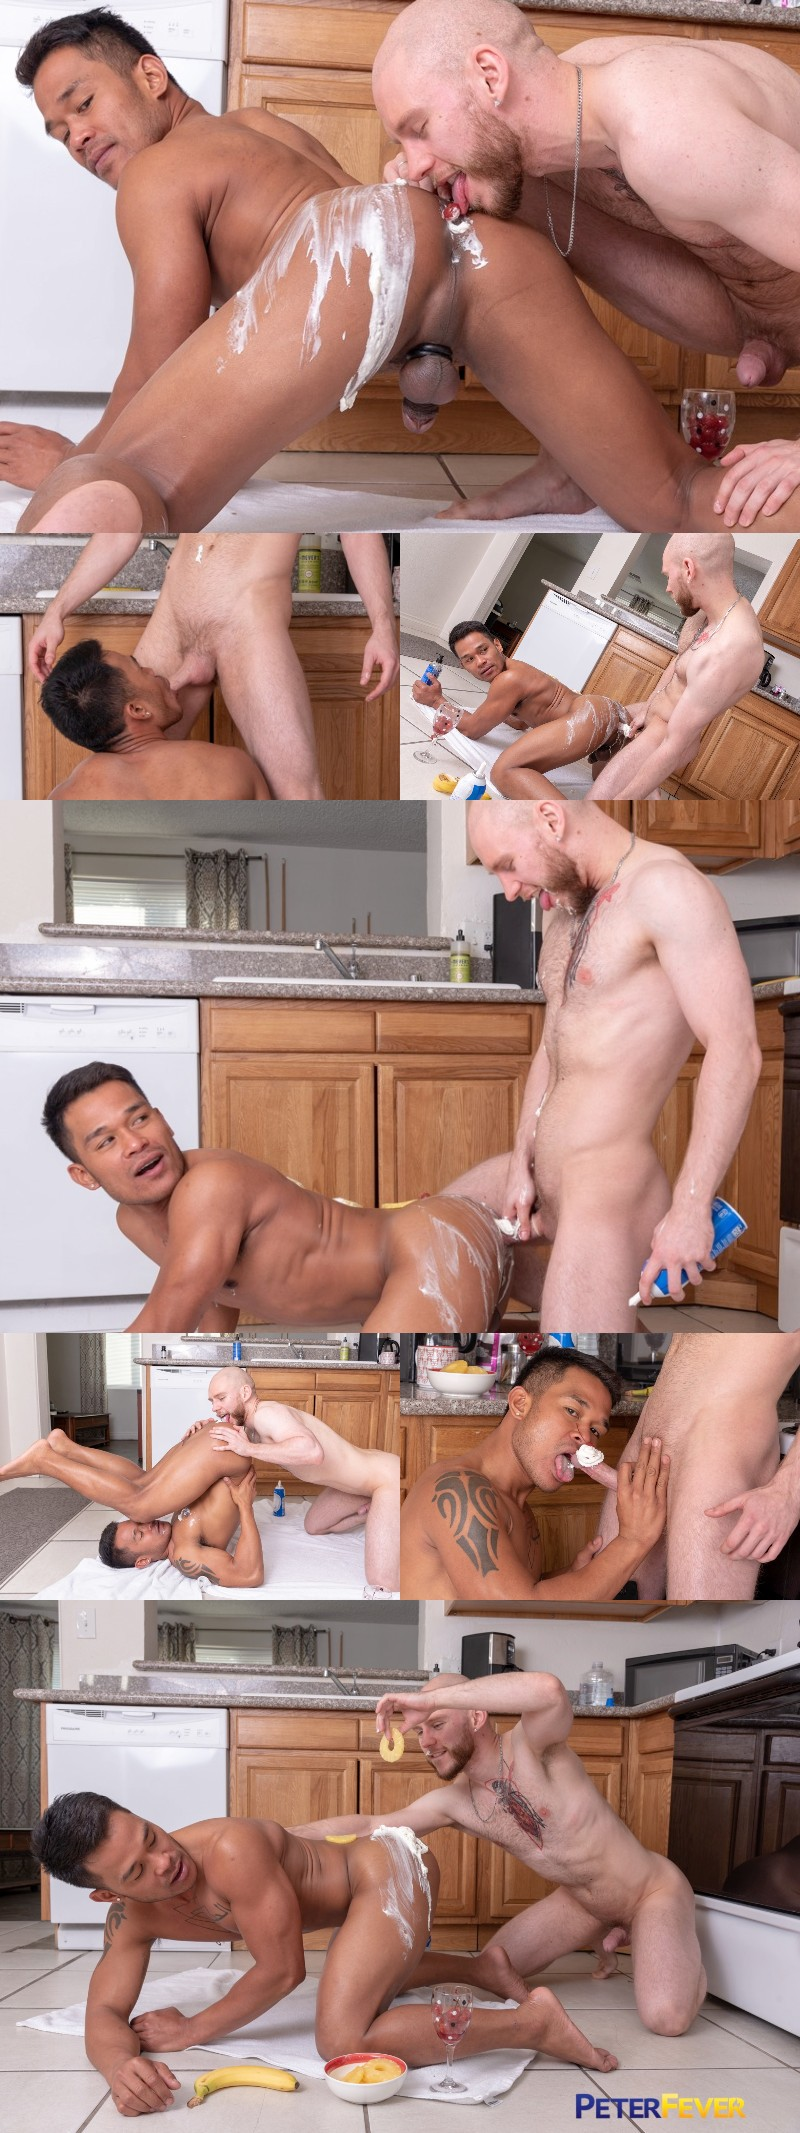 Lovers Fucking with Food on the Kitchen Floor